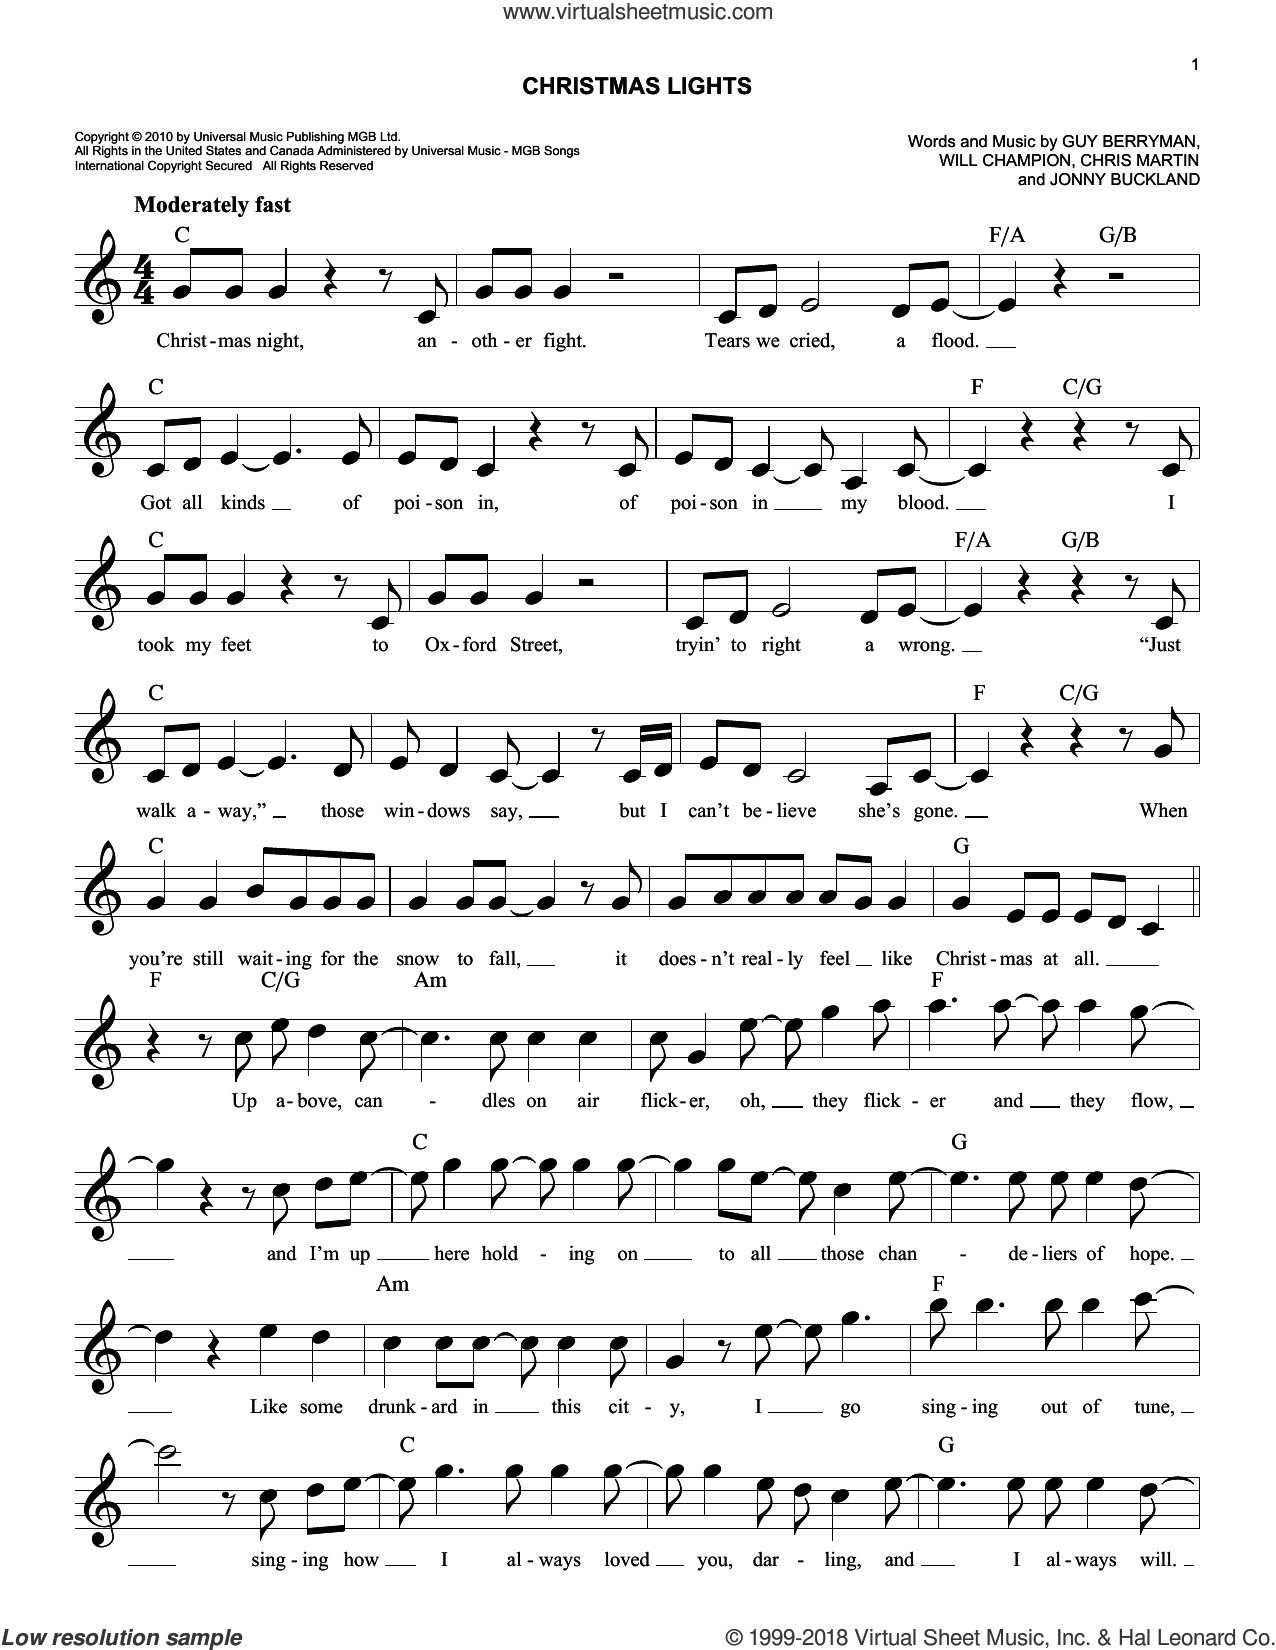 Christmas Lights sheet music for voice and other instruments (fake book) by Guy Berryman, Coldplay, Chris Martin, Jonny Buckland and Will Champion, intermediate skill level